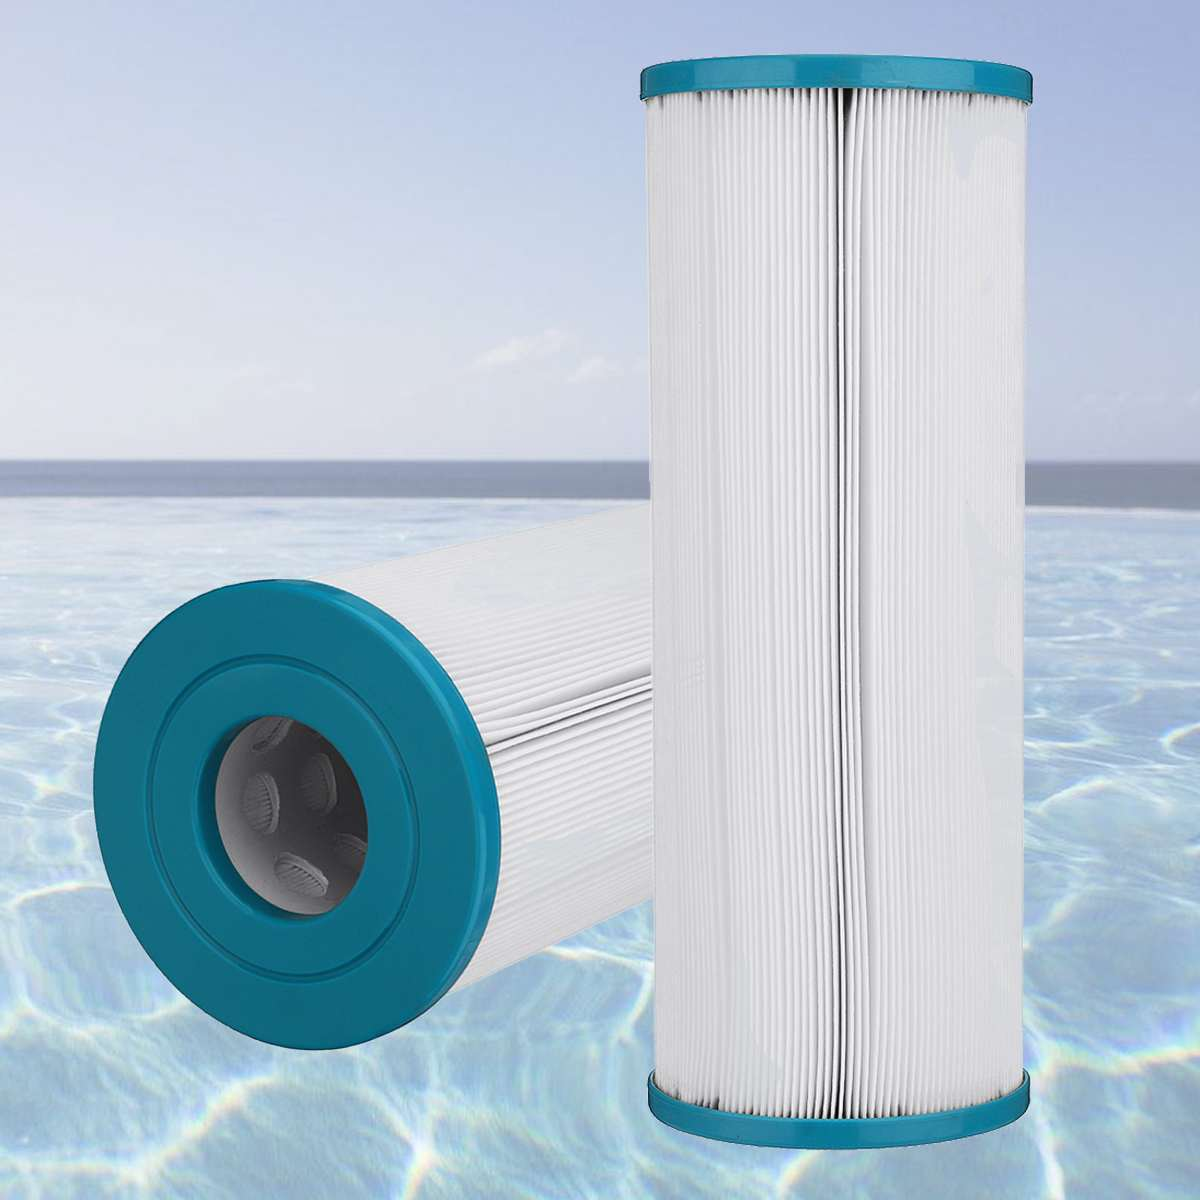 338x125x54mm Pool Filter Cartridge Replacement Element For Rainbow Dynamic RDC 2 Pool Spa Filter Cartridge